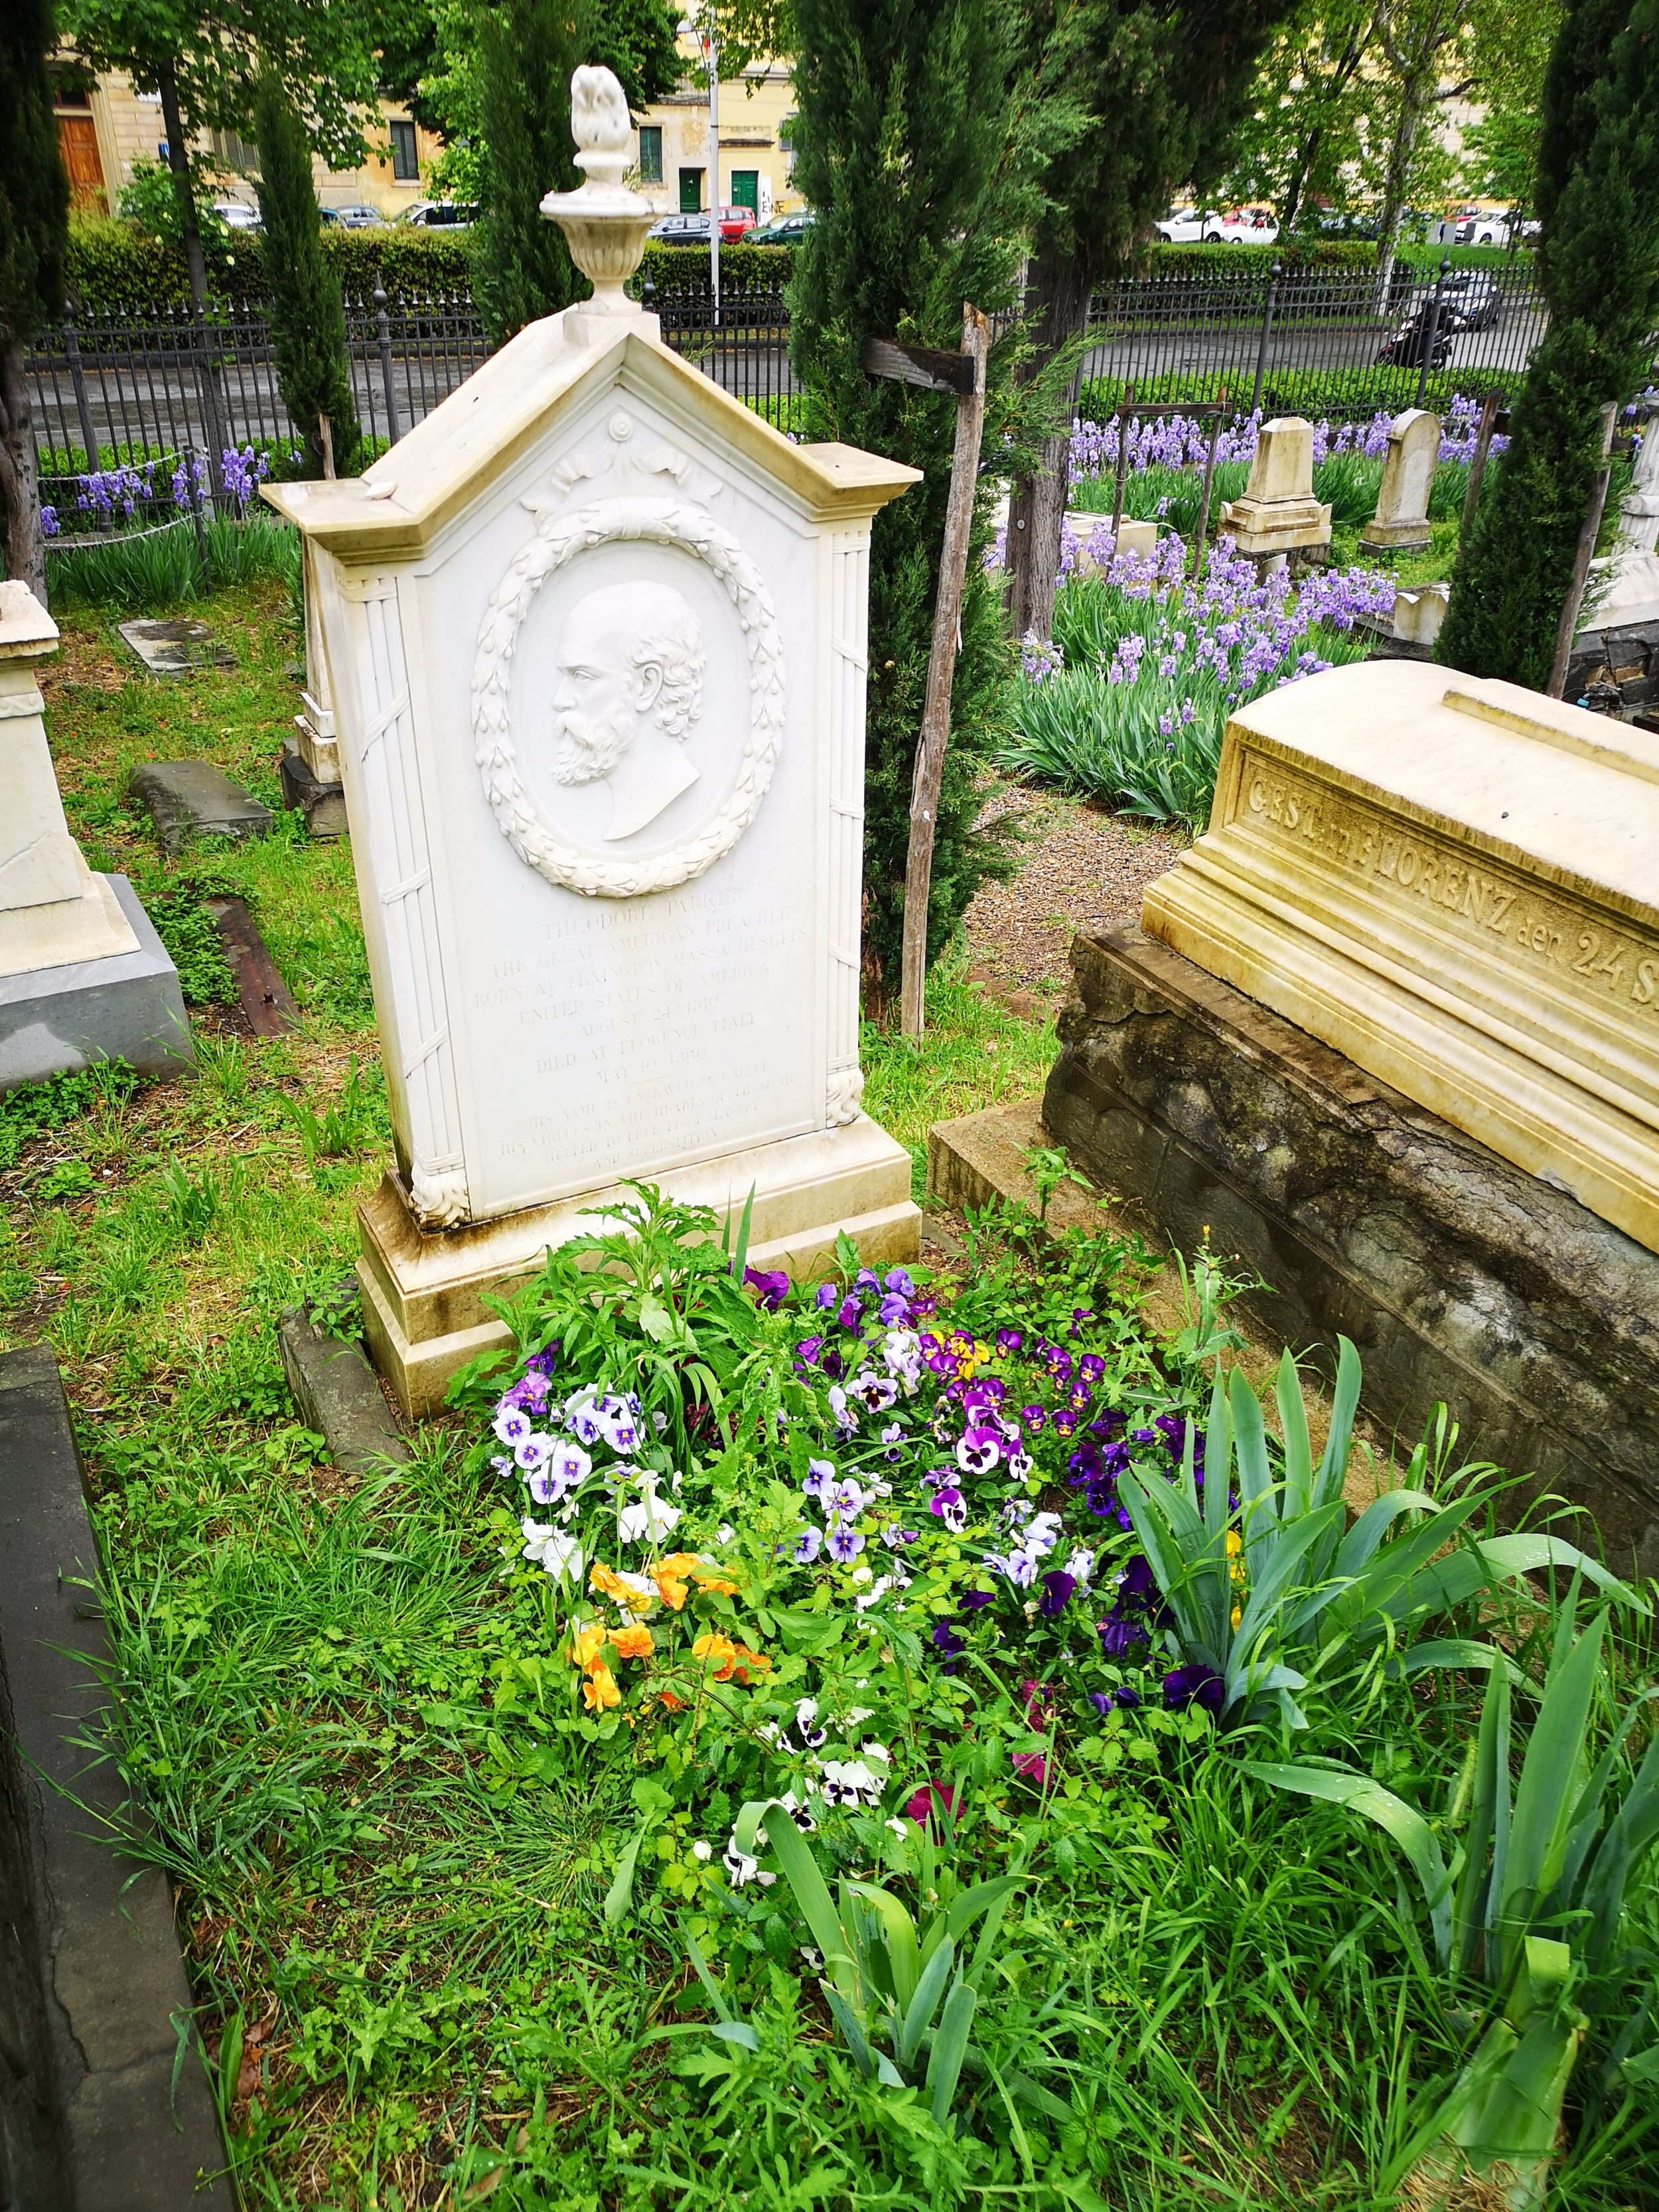 Theodore Parker's final resting place.